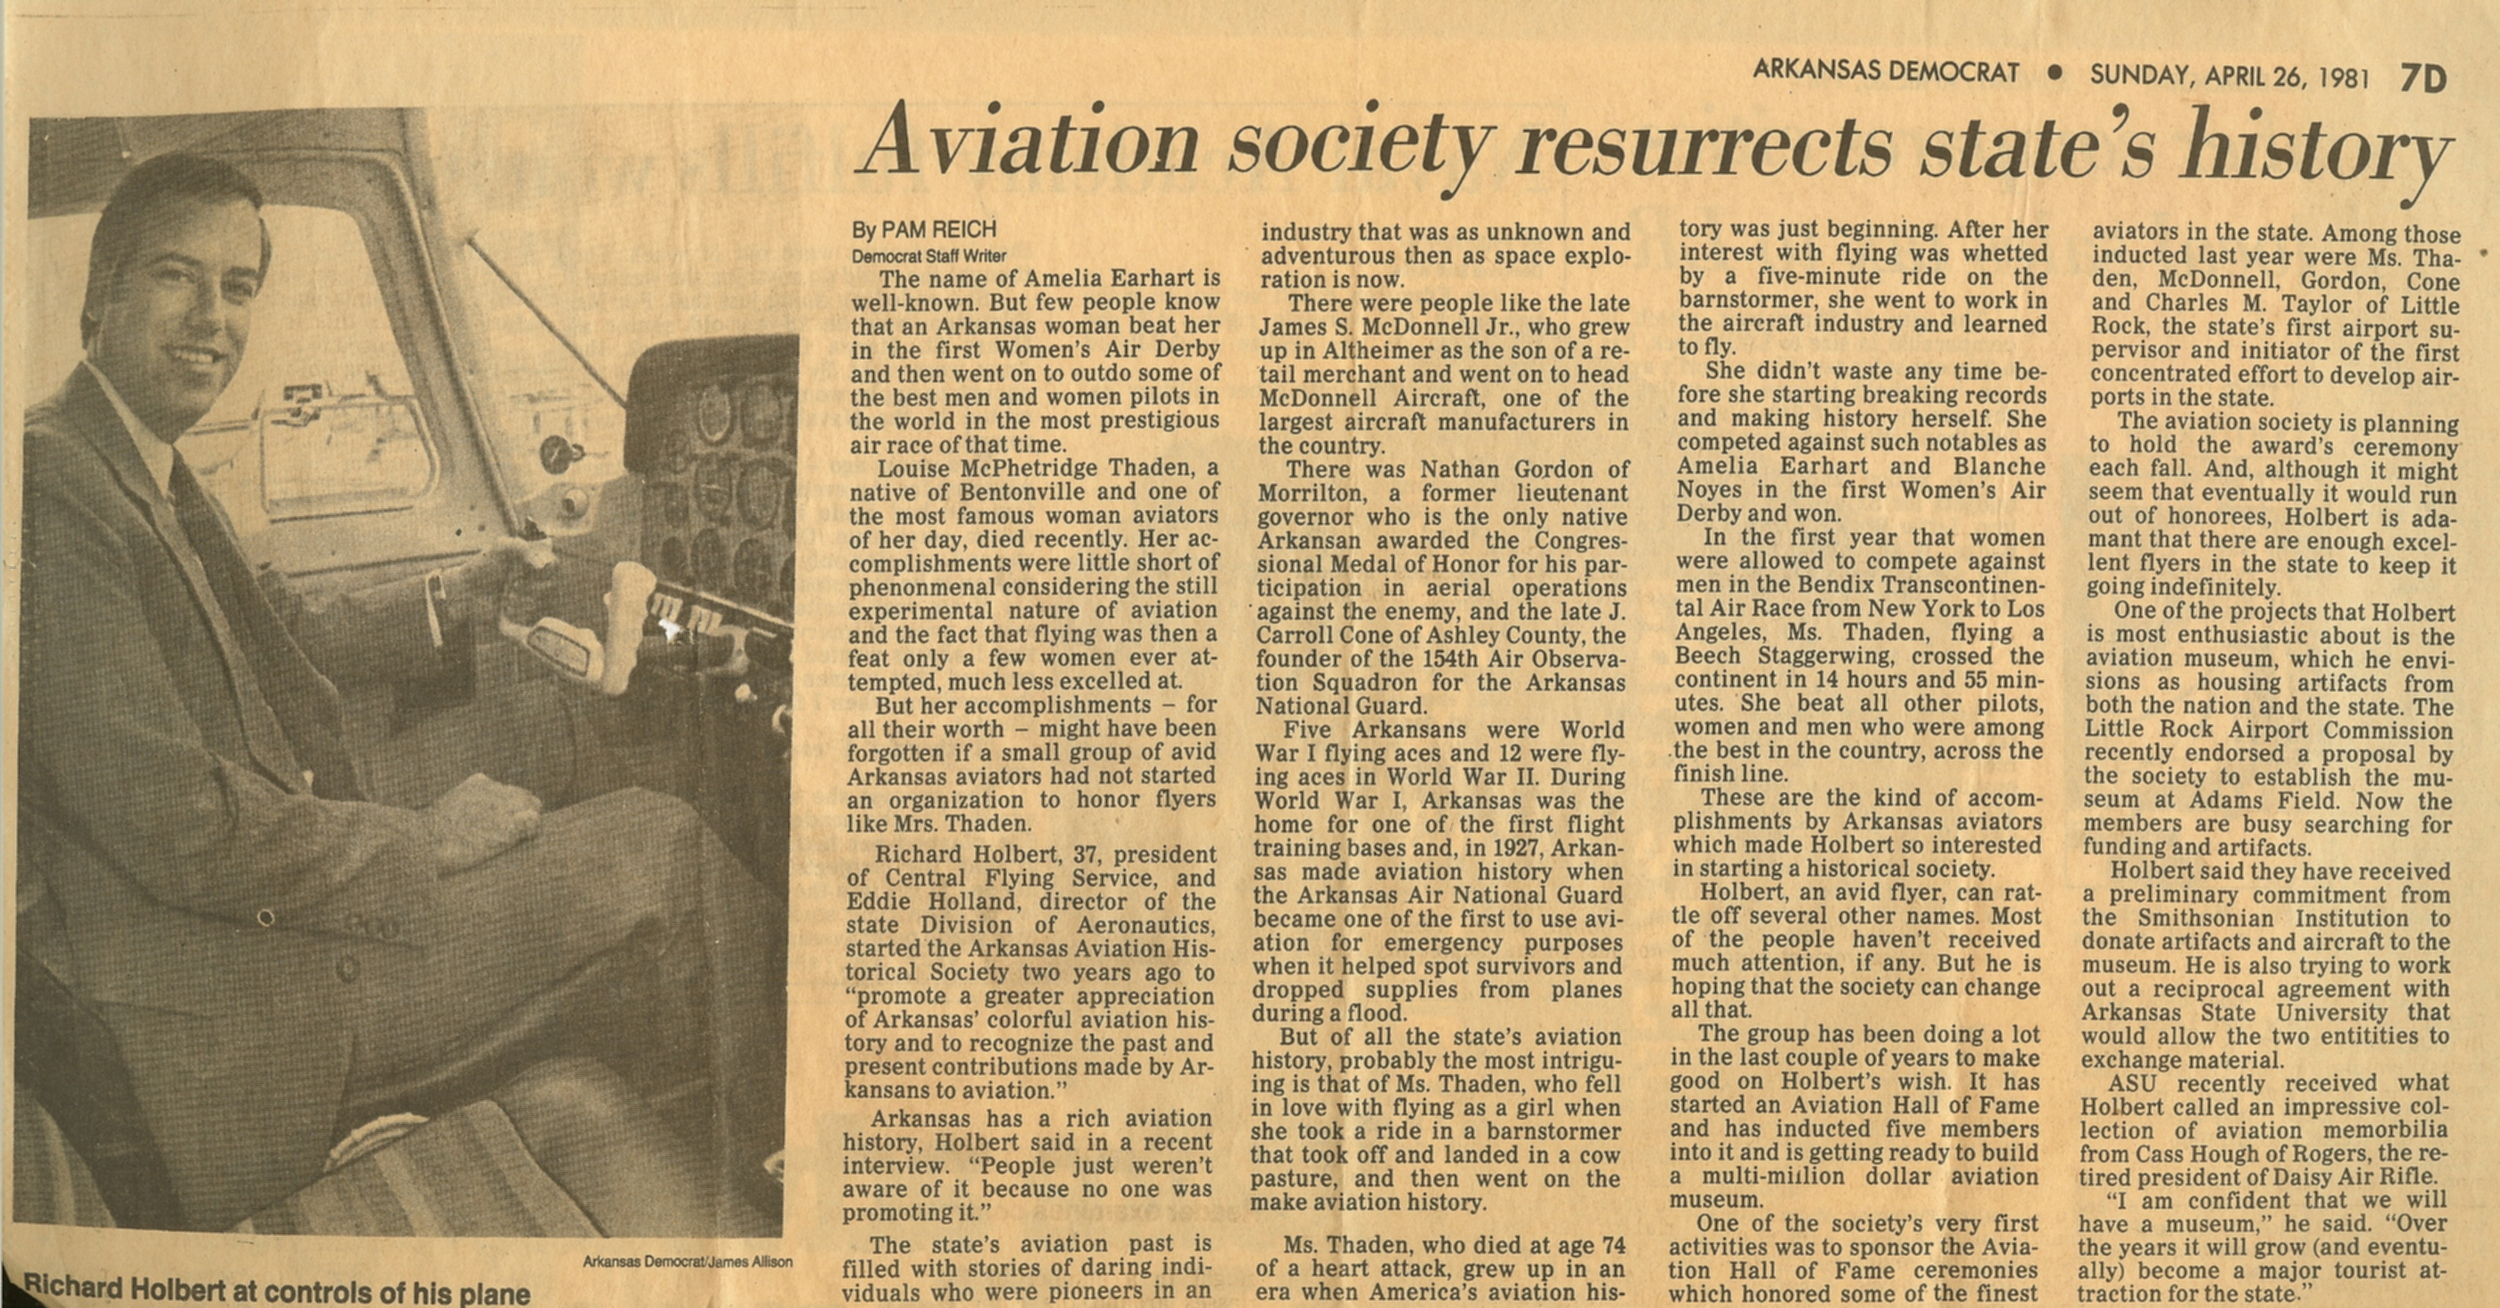 Aviation society resurrects state's history 1981.jpg